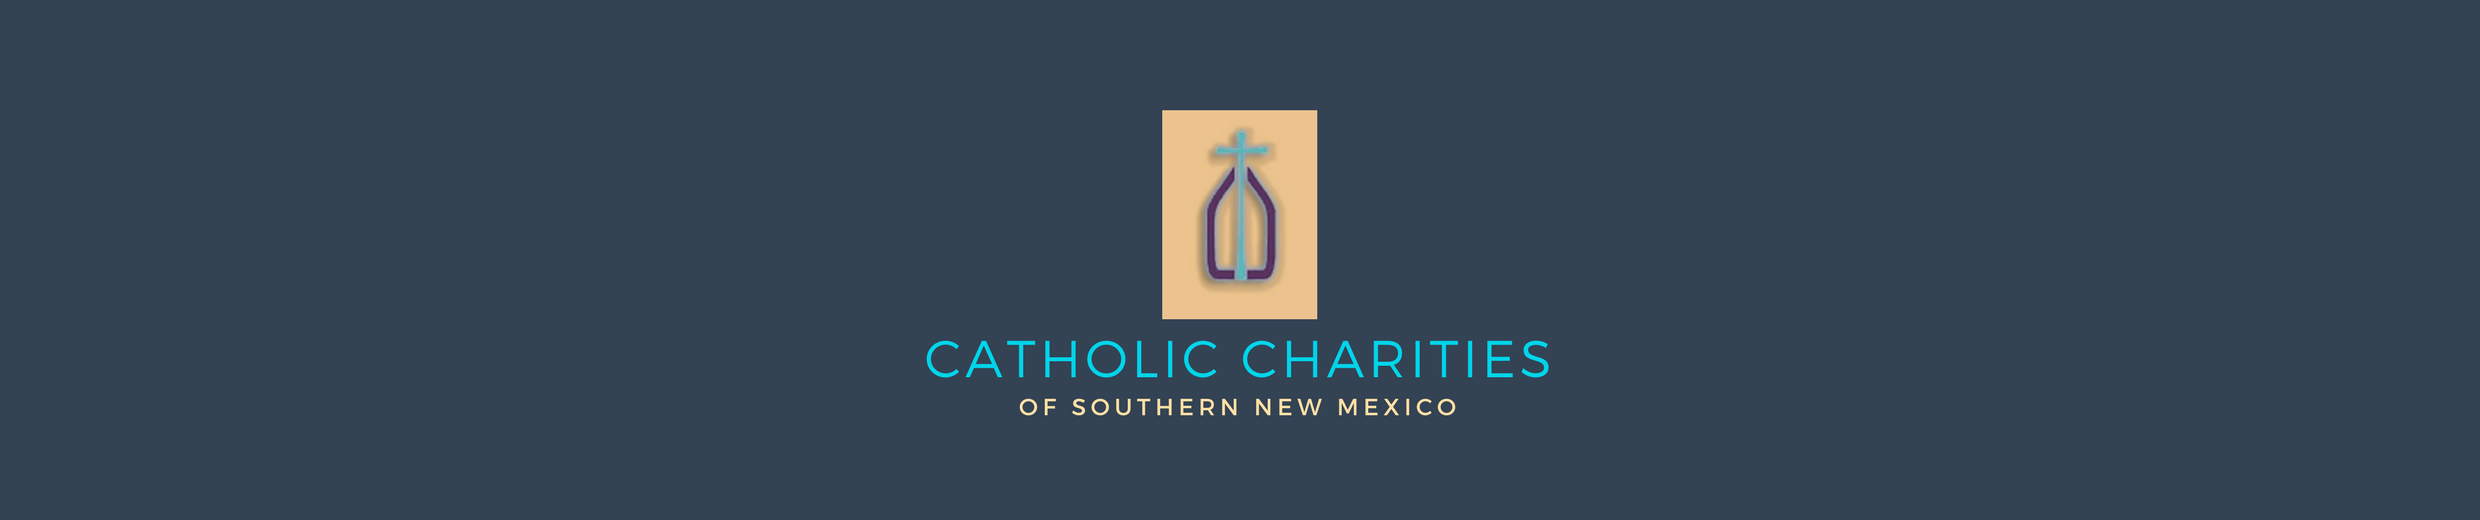 Catholic Charities of Southern New Mexico